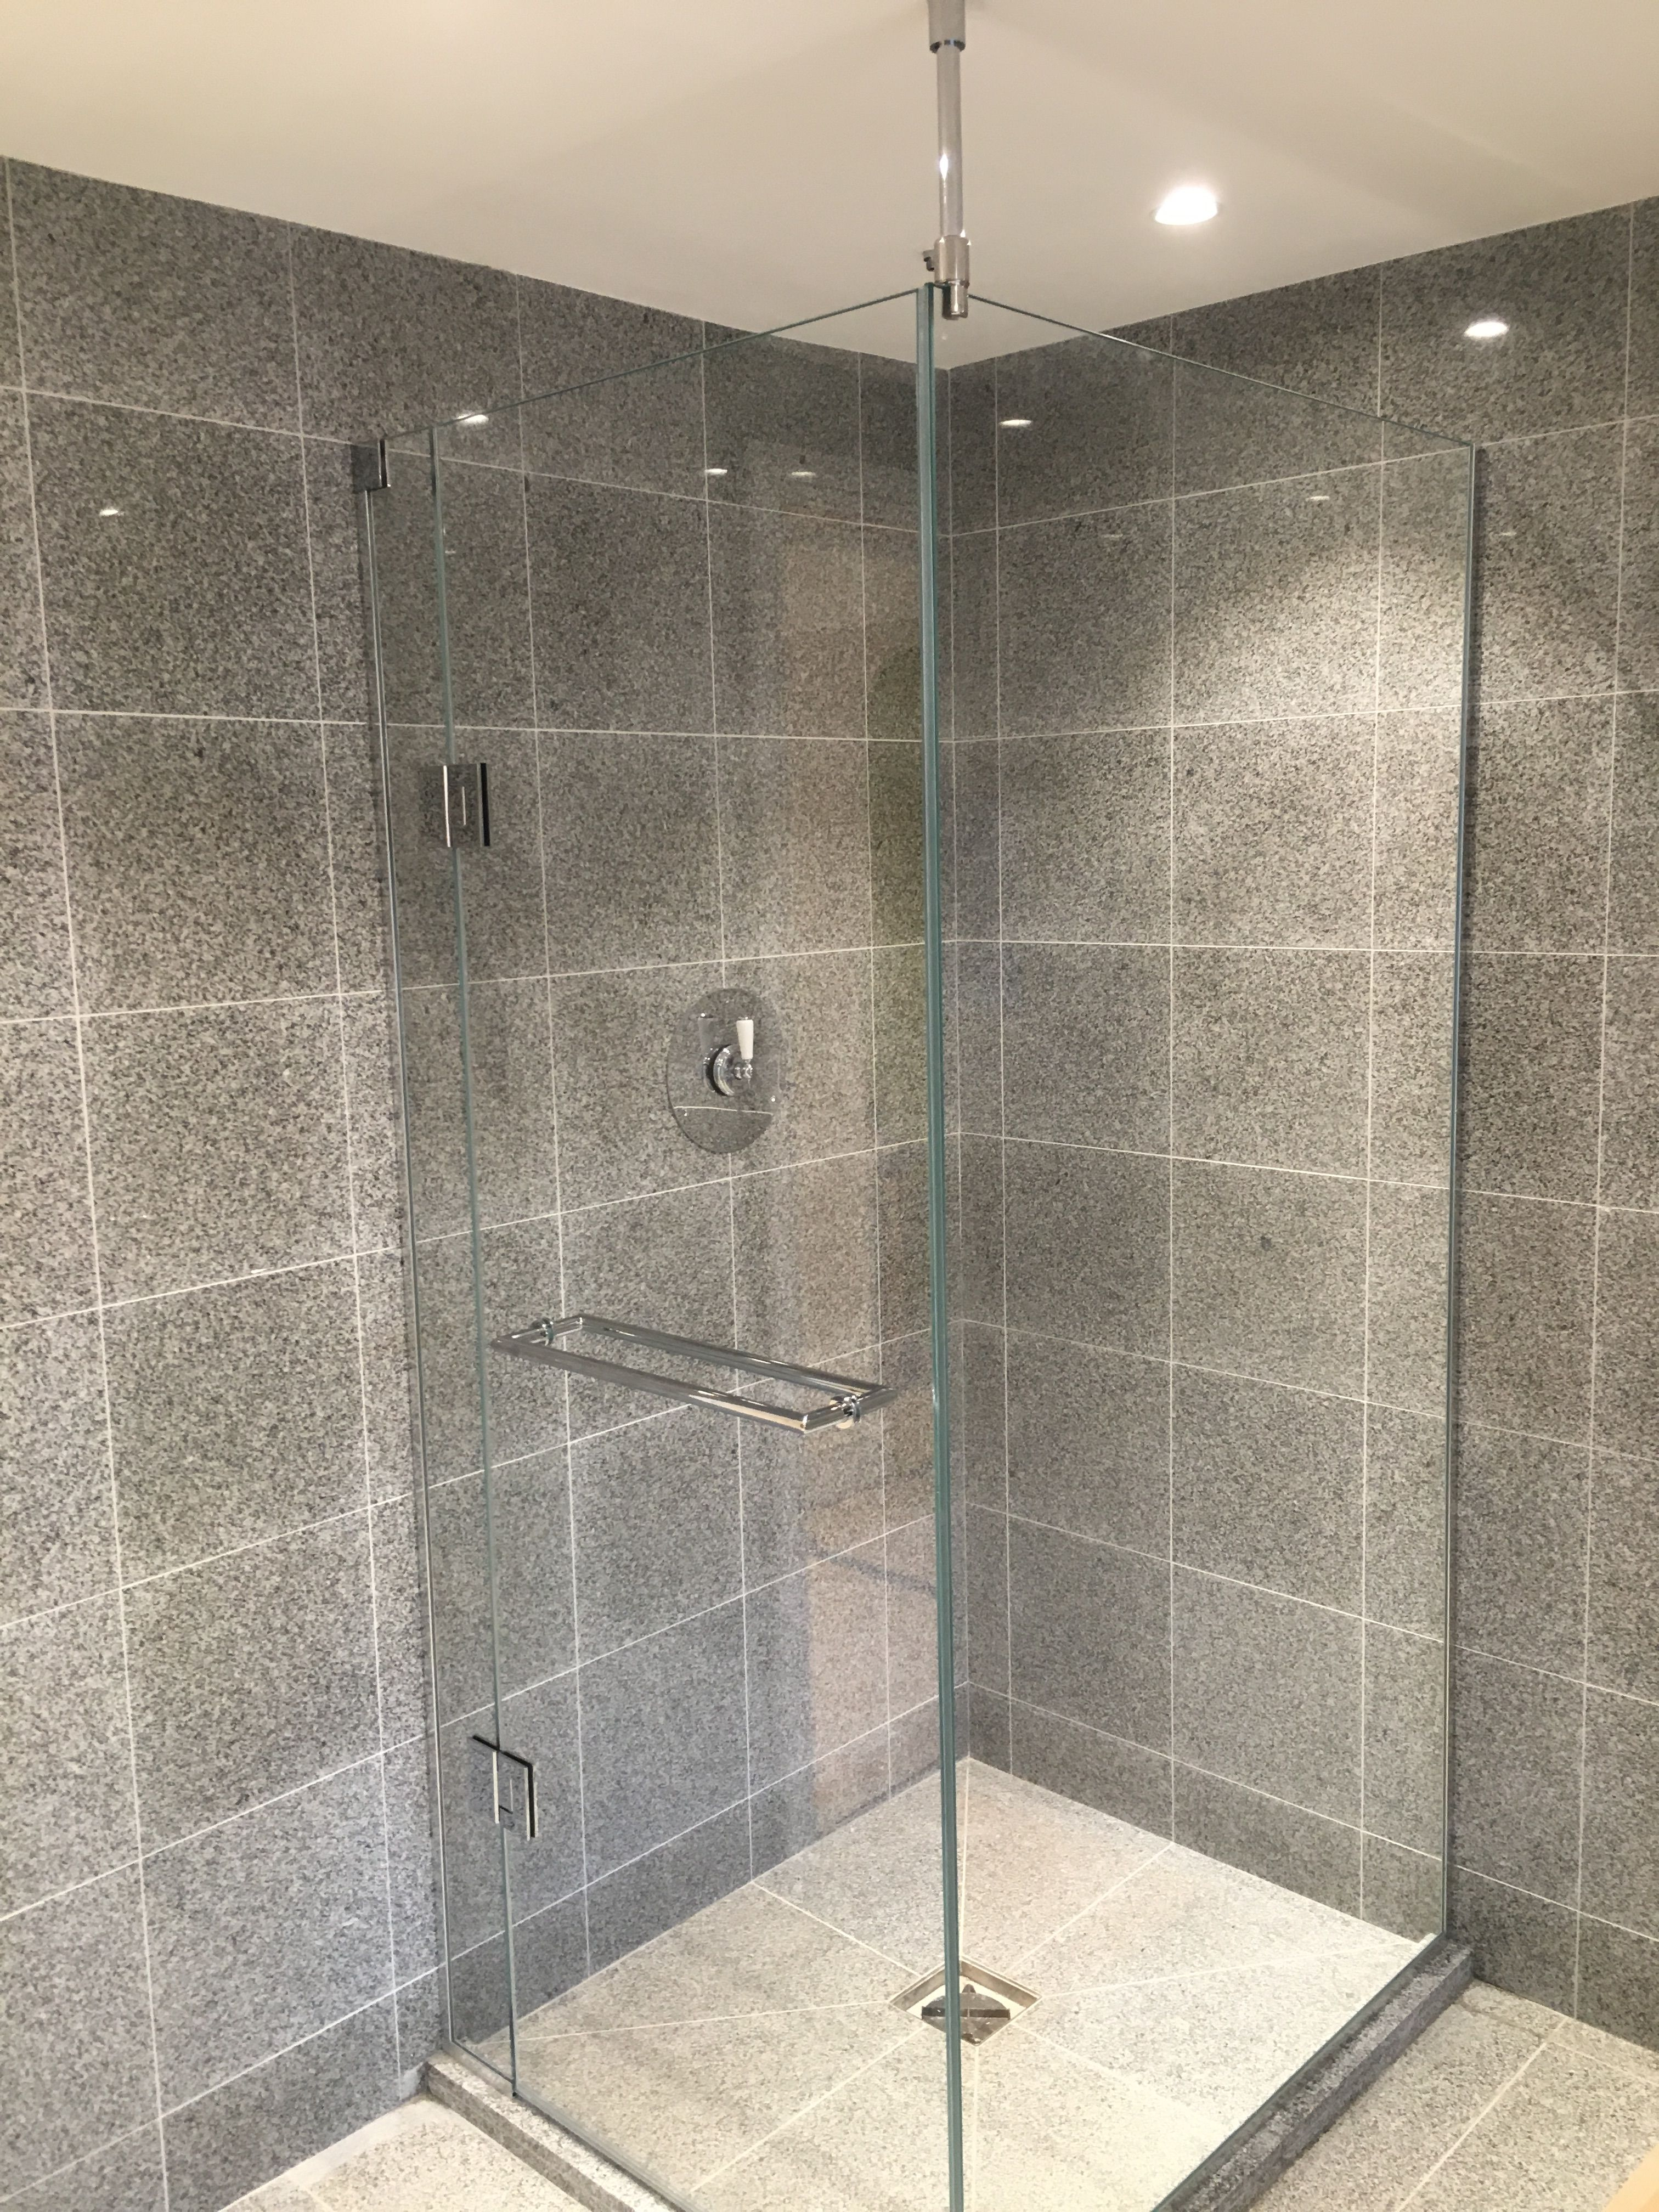 Frameless 2 sided shower enclosure in low iron glass with anti ...